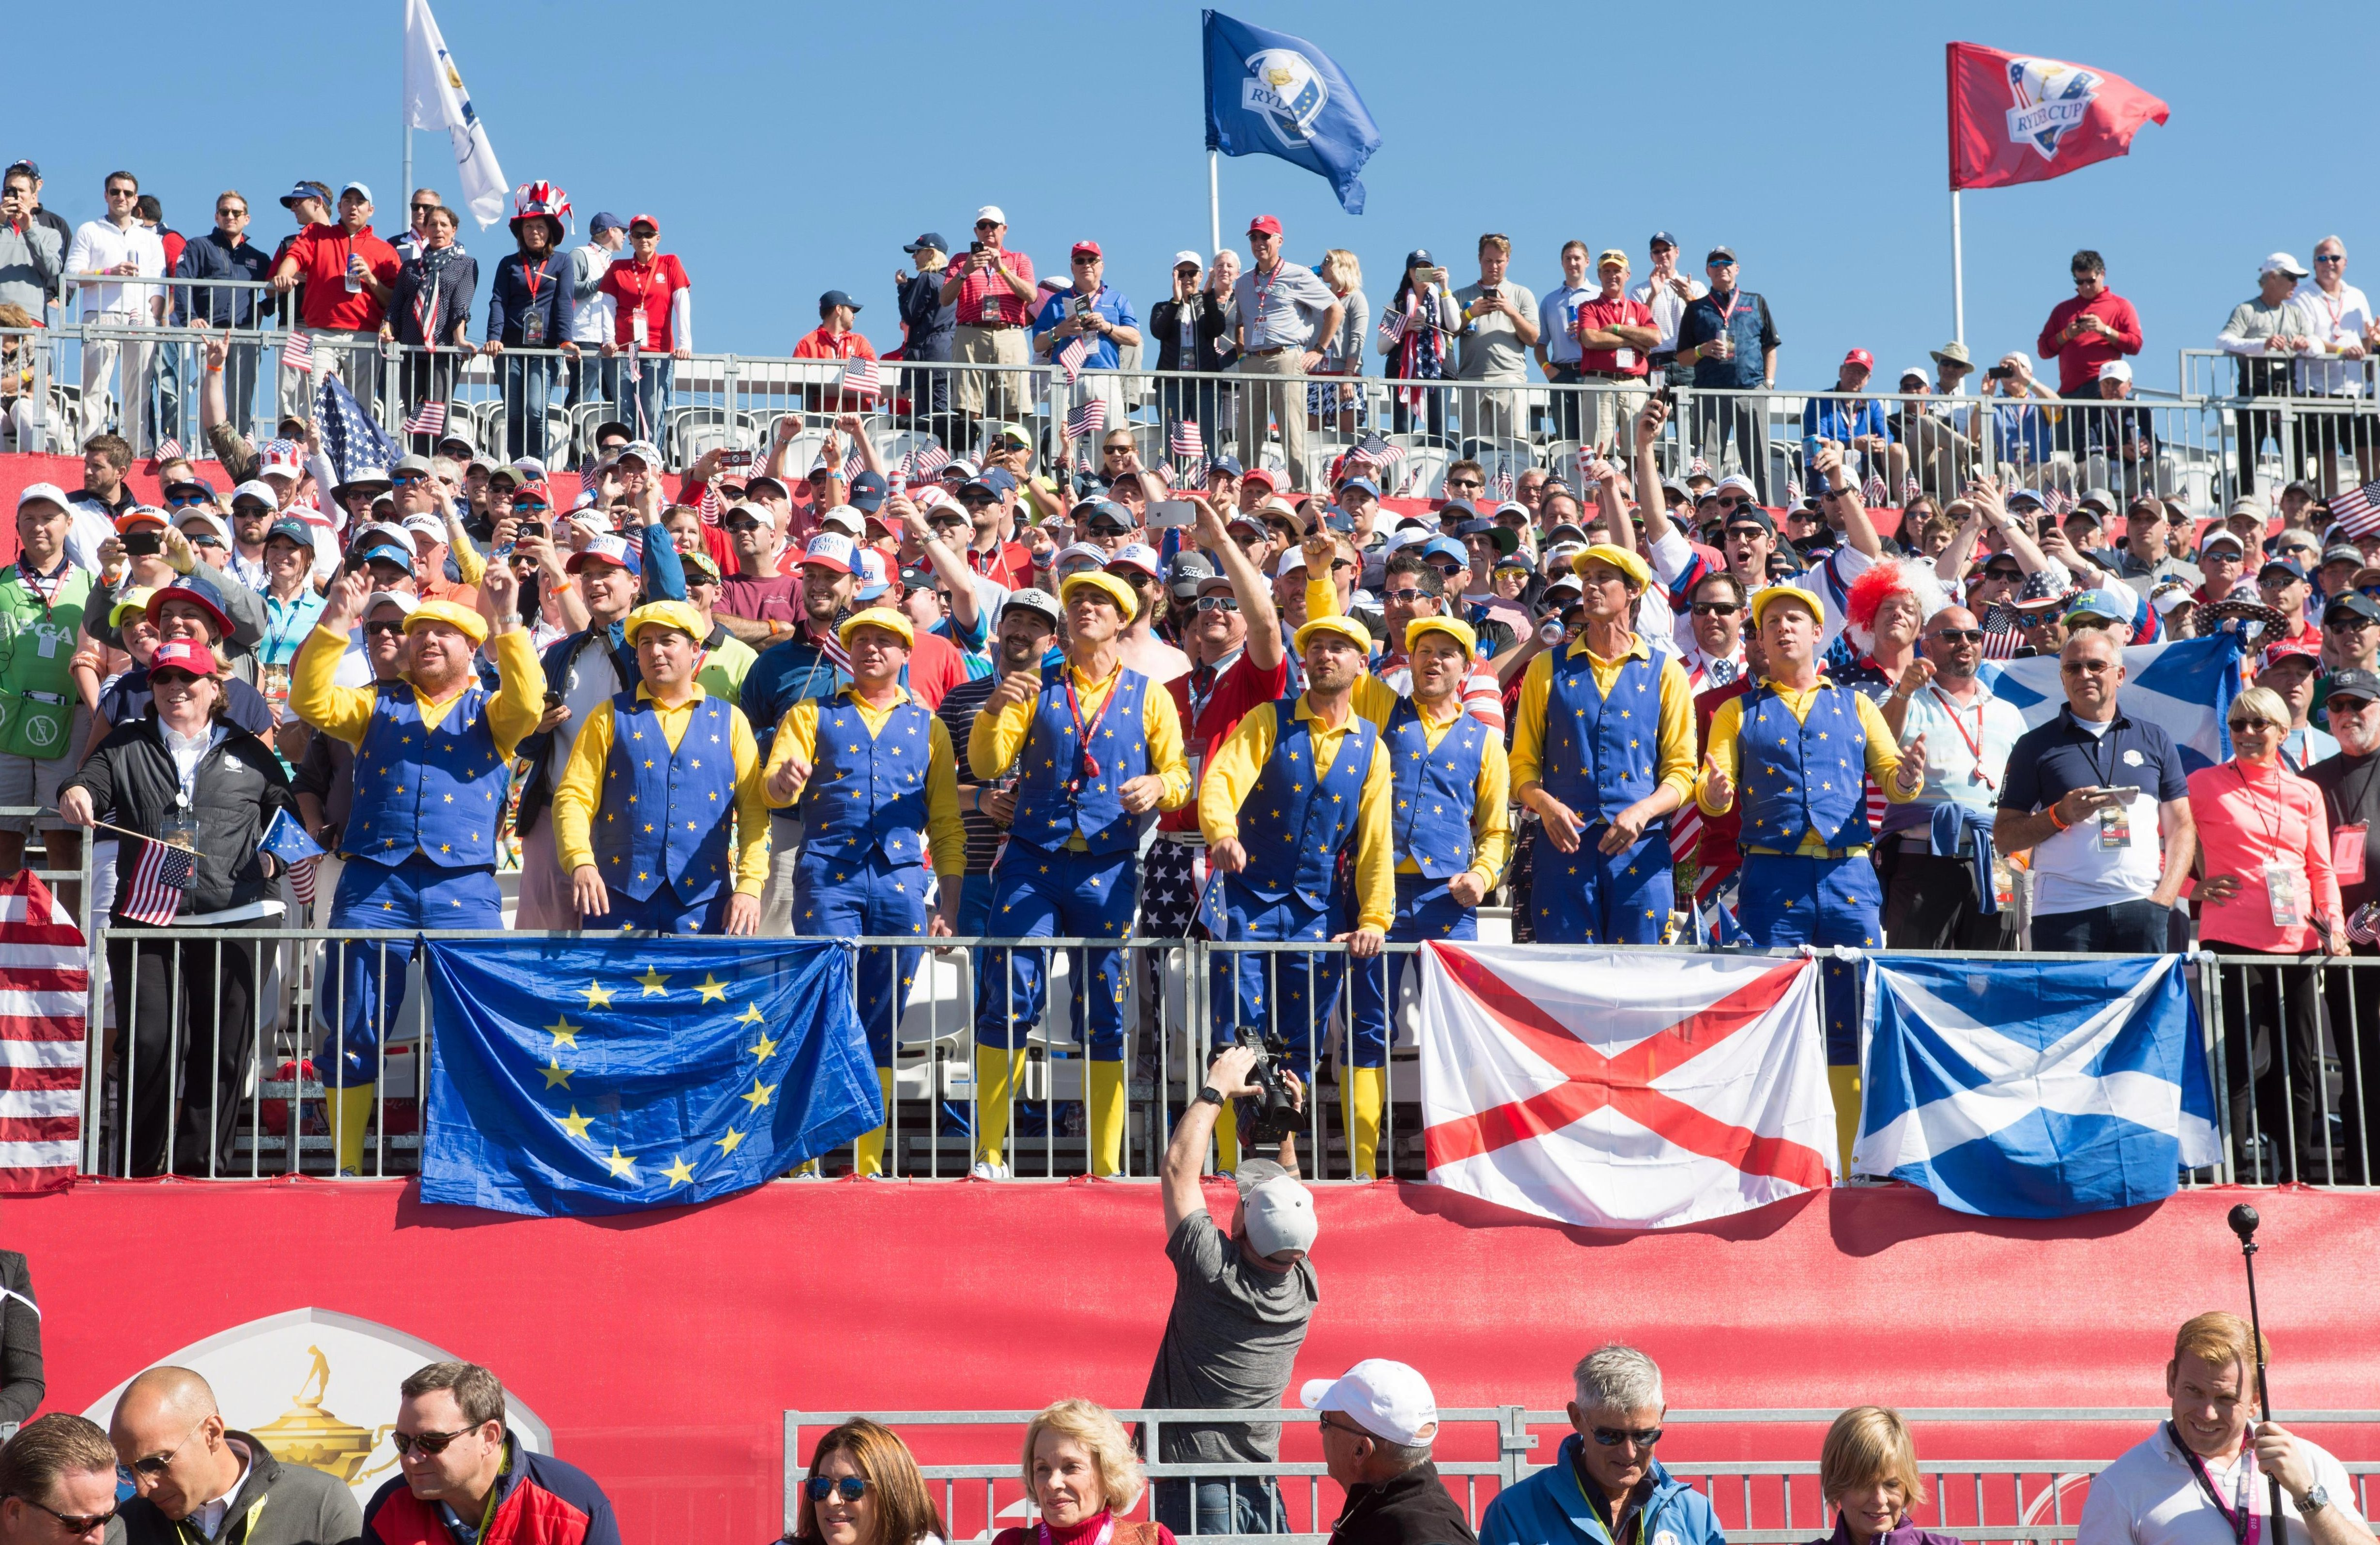 The Ryder Cup is nearly here